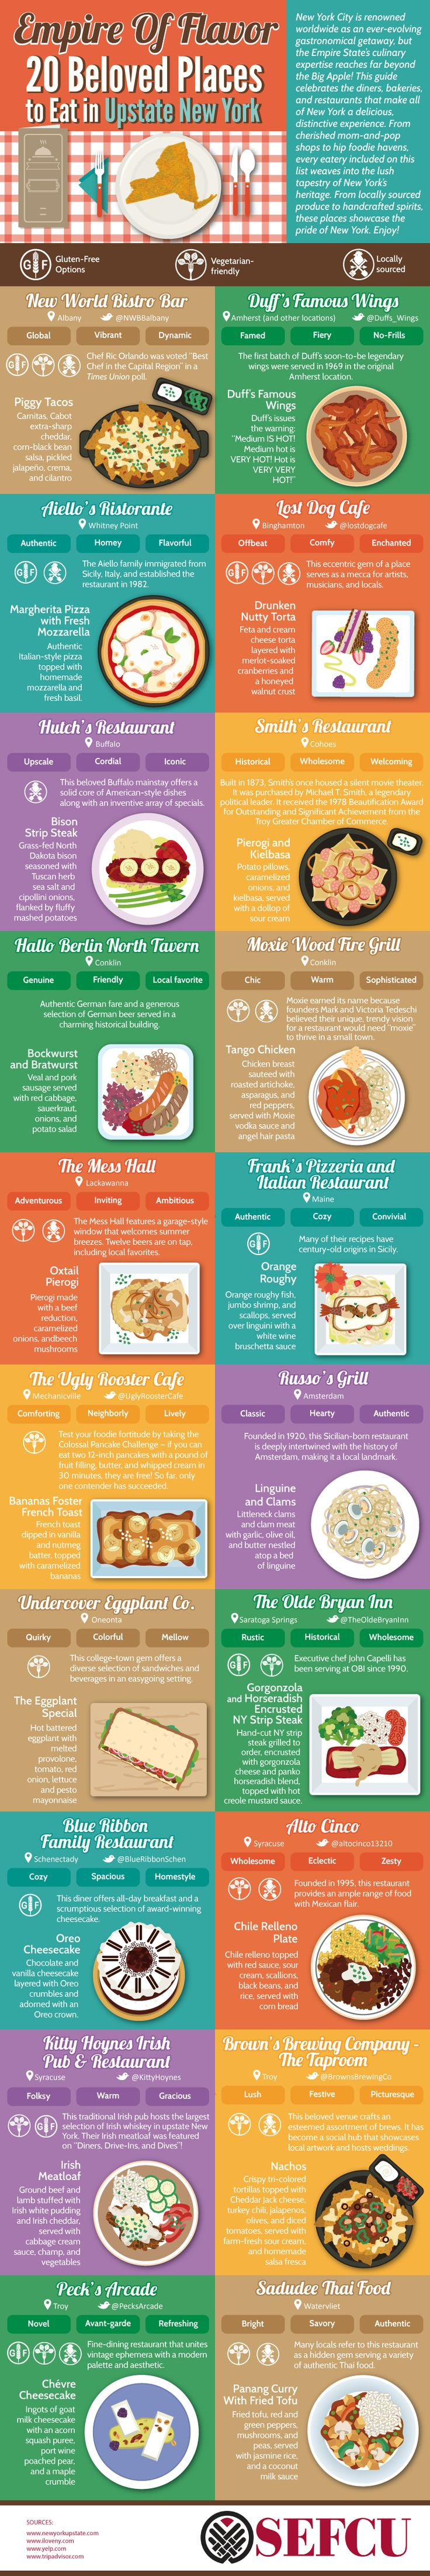 Empire of Flavor: 20 Beloved Places to Eat in Upstate New York #Infographic #Featured #Food #Travel